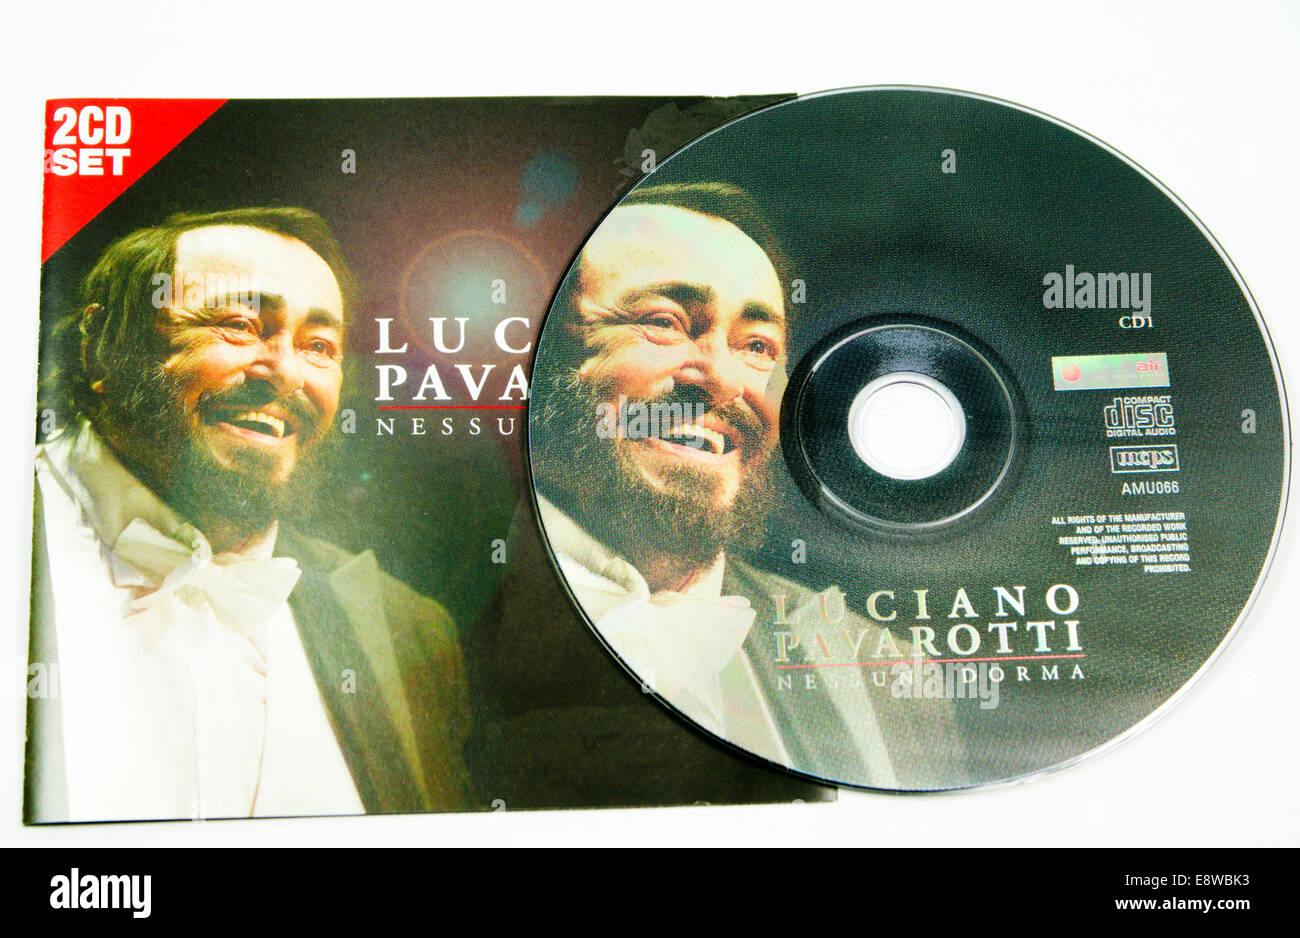 compact disc. - Stock Image